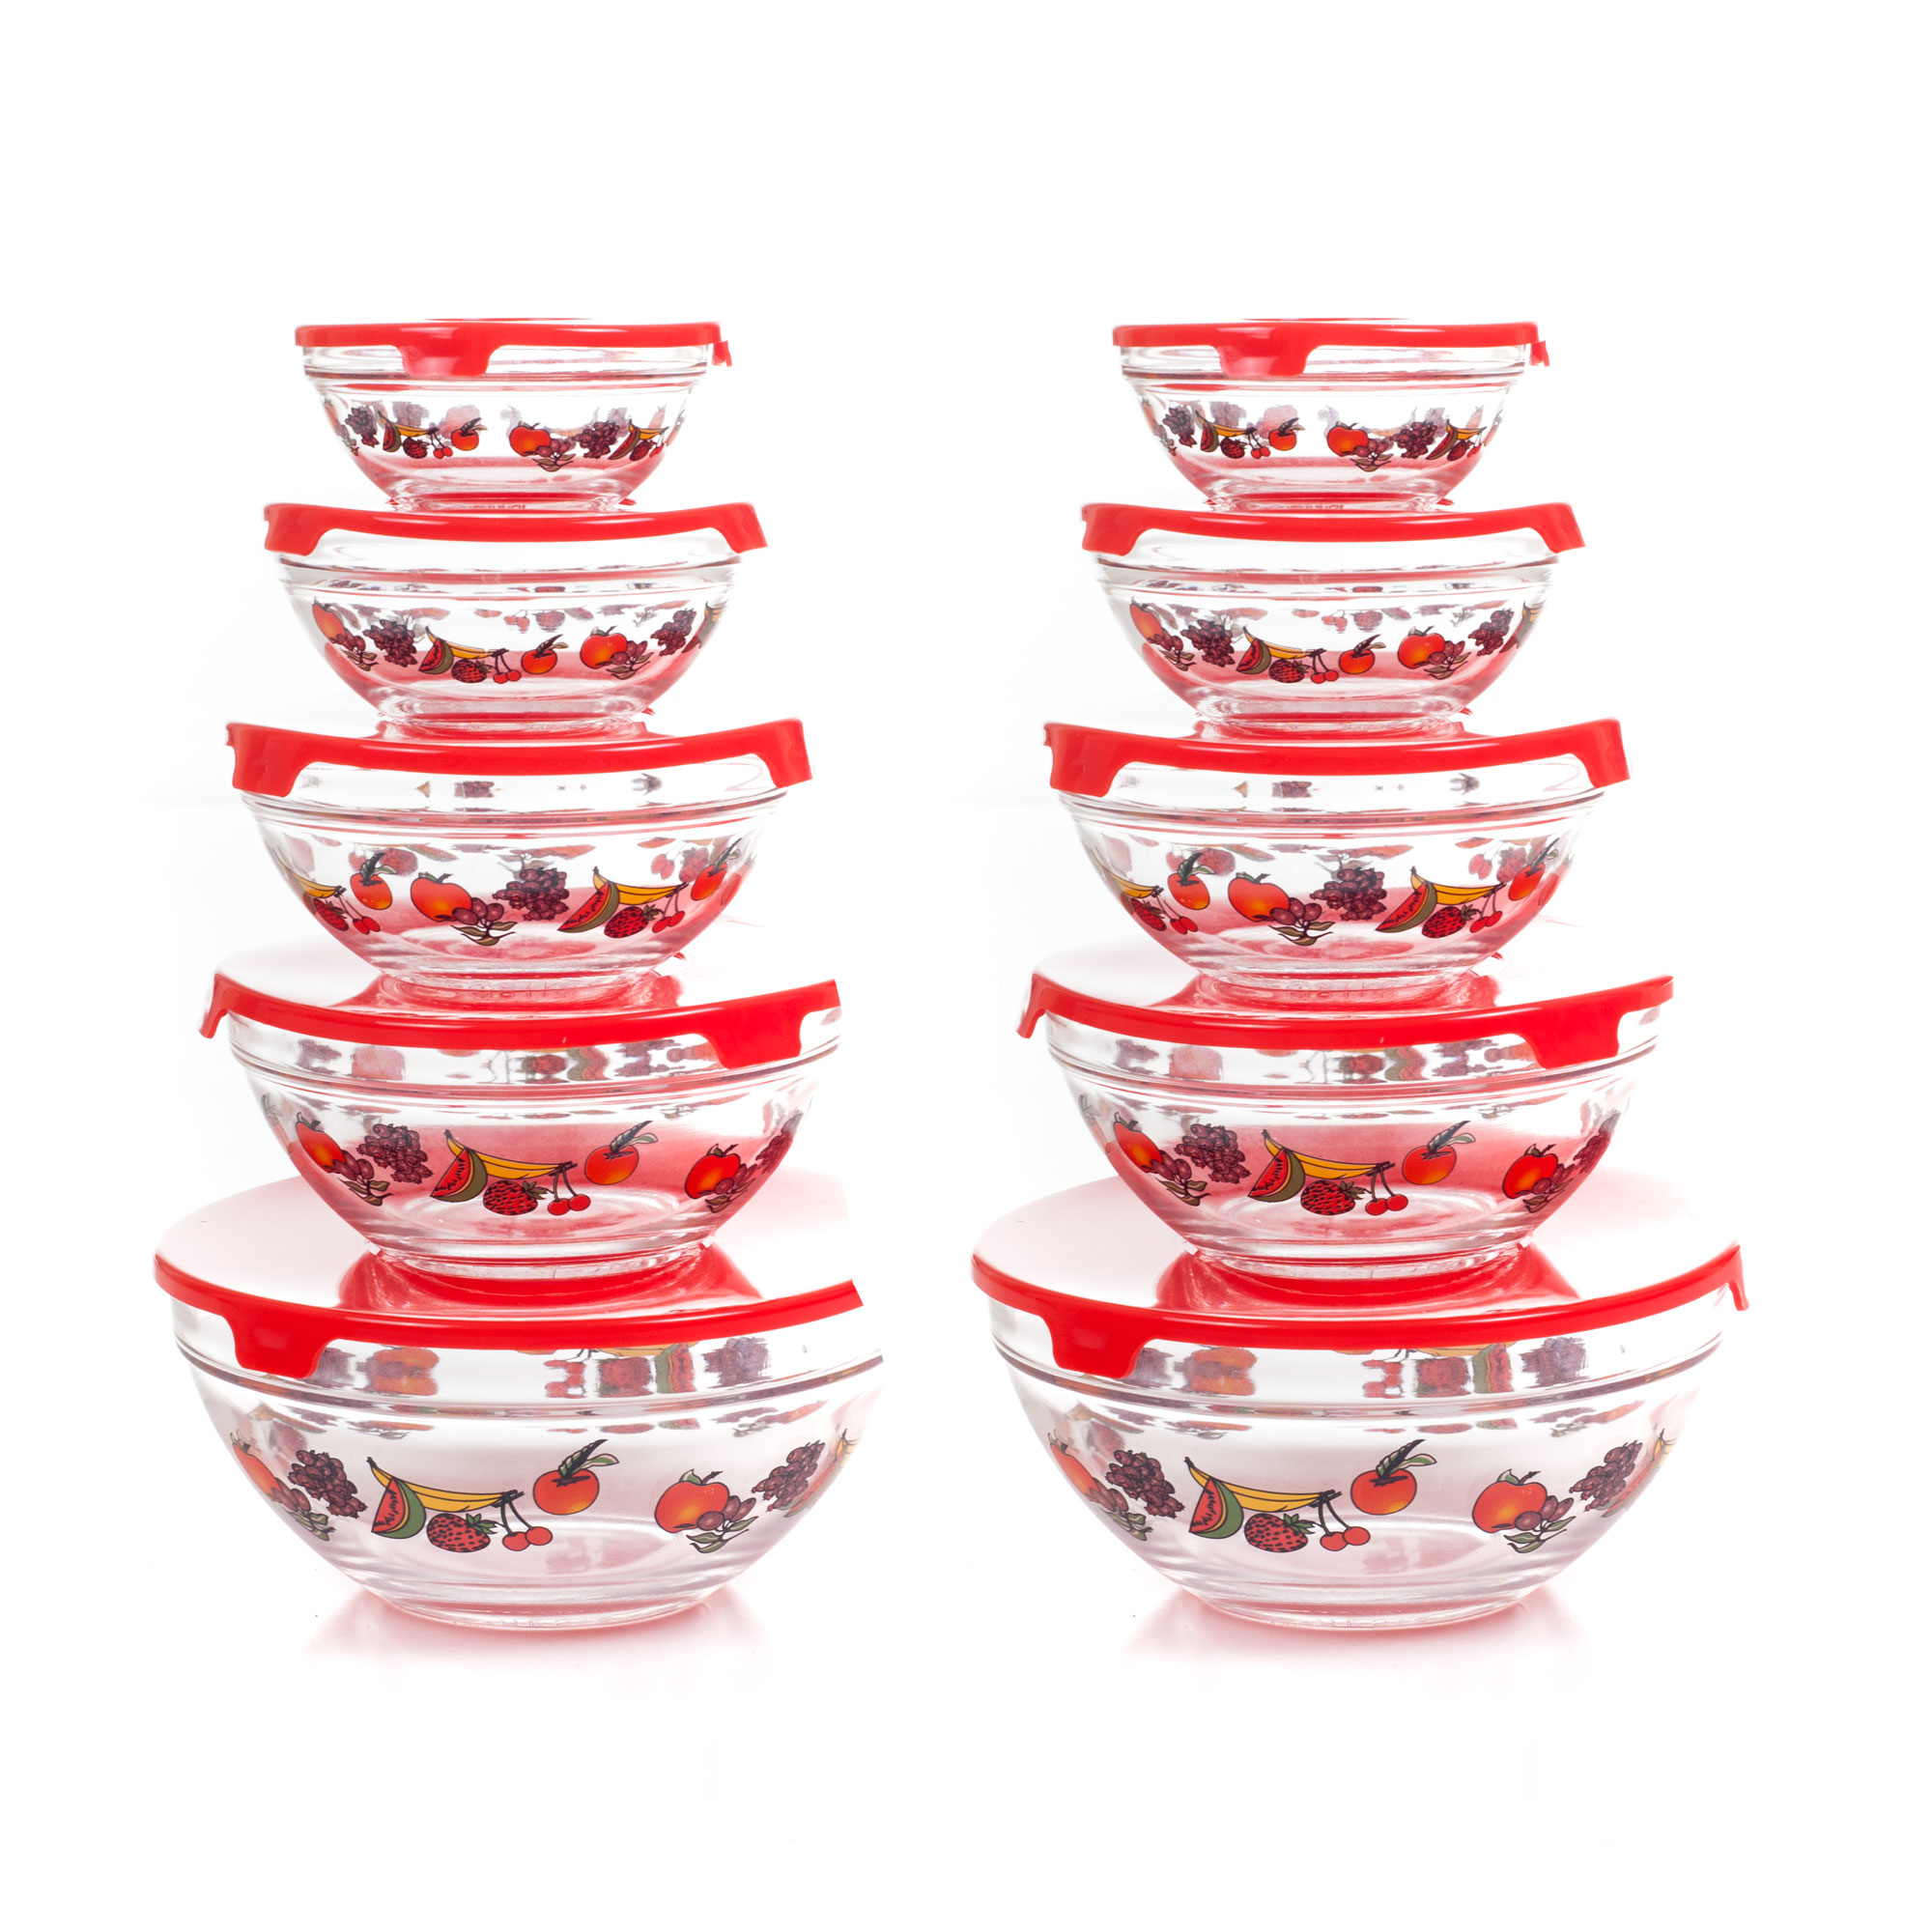 20 Piece Glass Bowl Set with Lids 10 Bowls w Lids Food Storage Bowls Fruit Design 5 Sizes